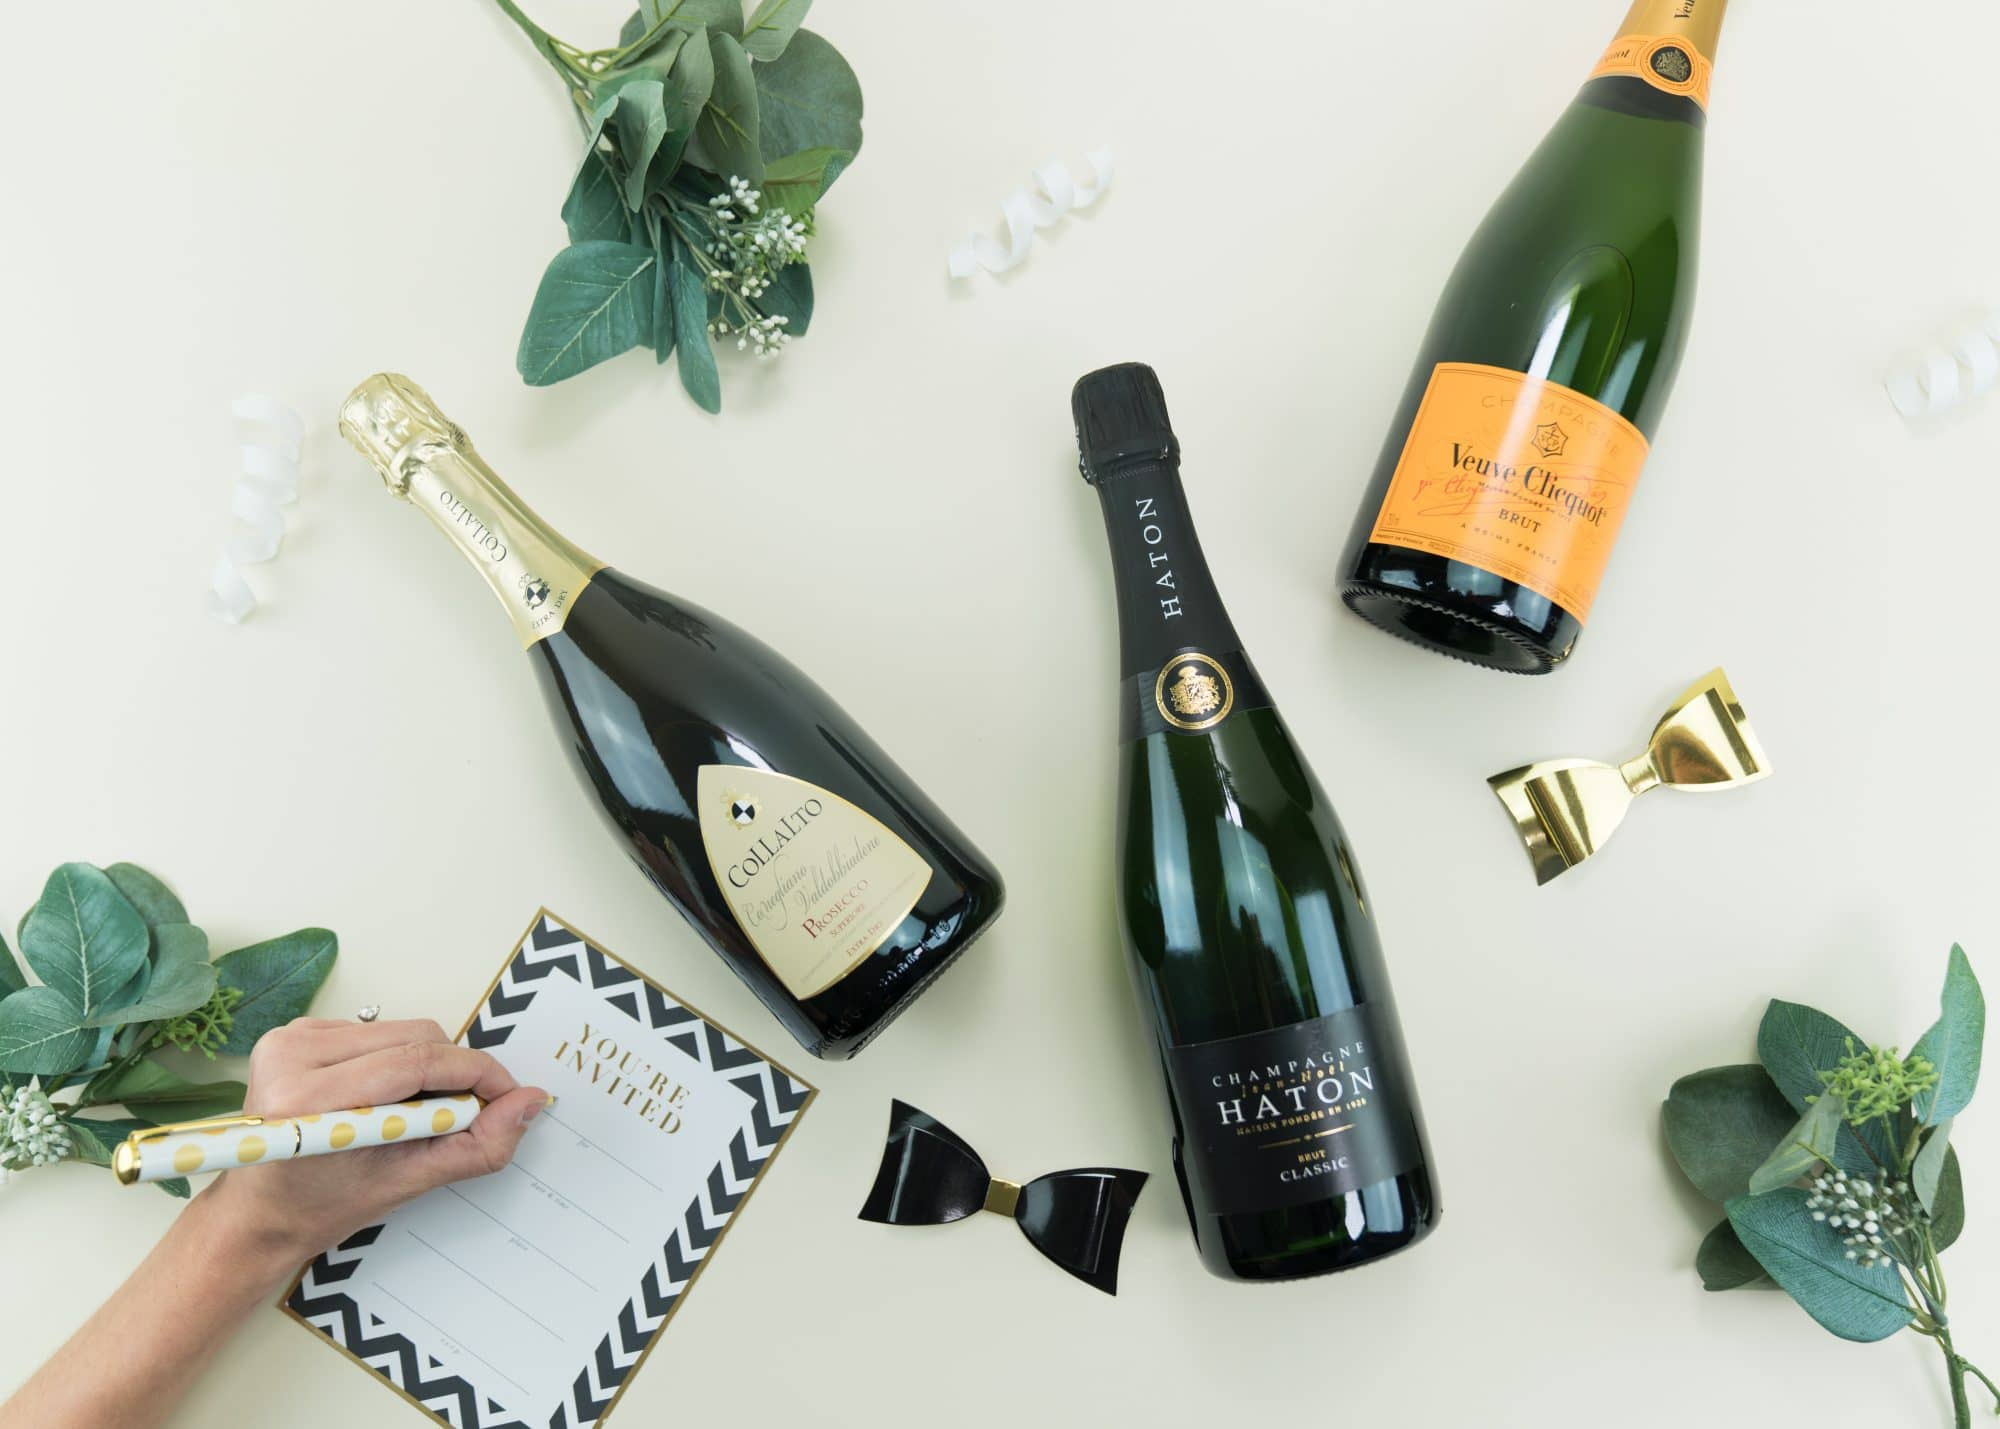 ABC Fine Wine & Spirits - flat lay photo of champagne bottles